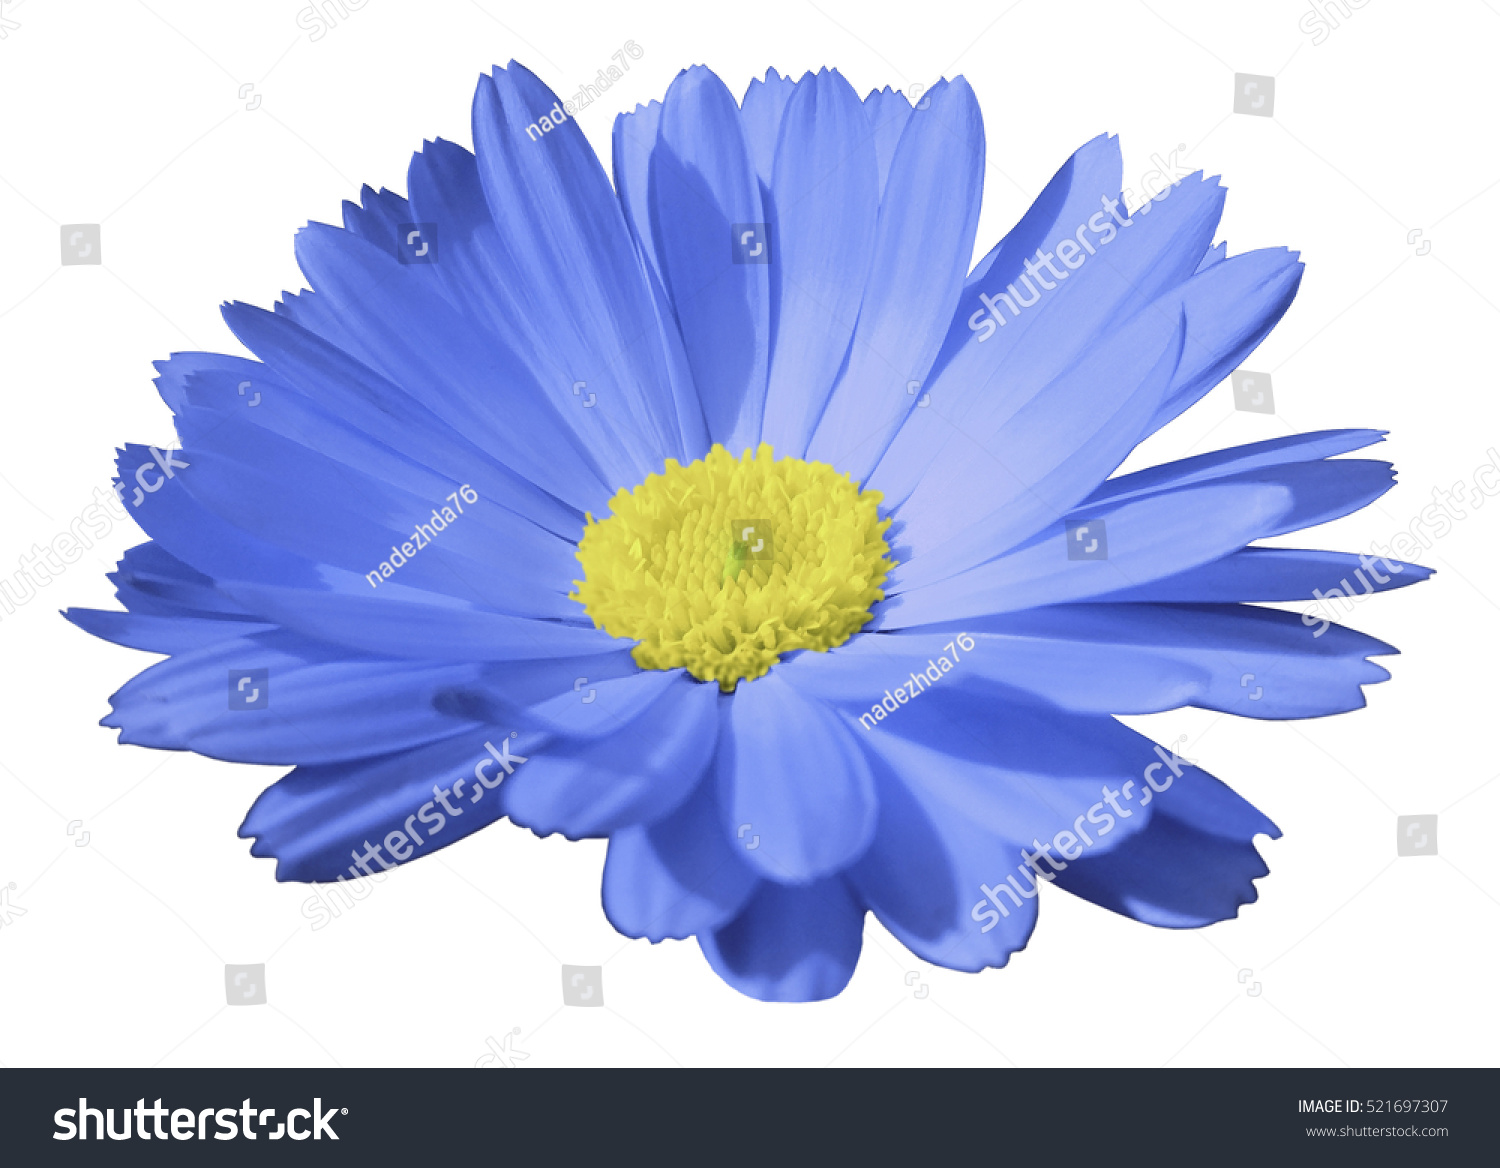 Royalty free blue flower calendula the white 521697307 stock blue flower calendula the white isolated background with clipping path closeup no shadows light yellow center nature stock photo mightylinksfo